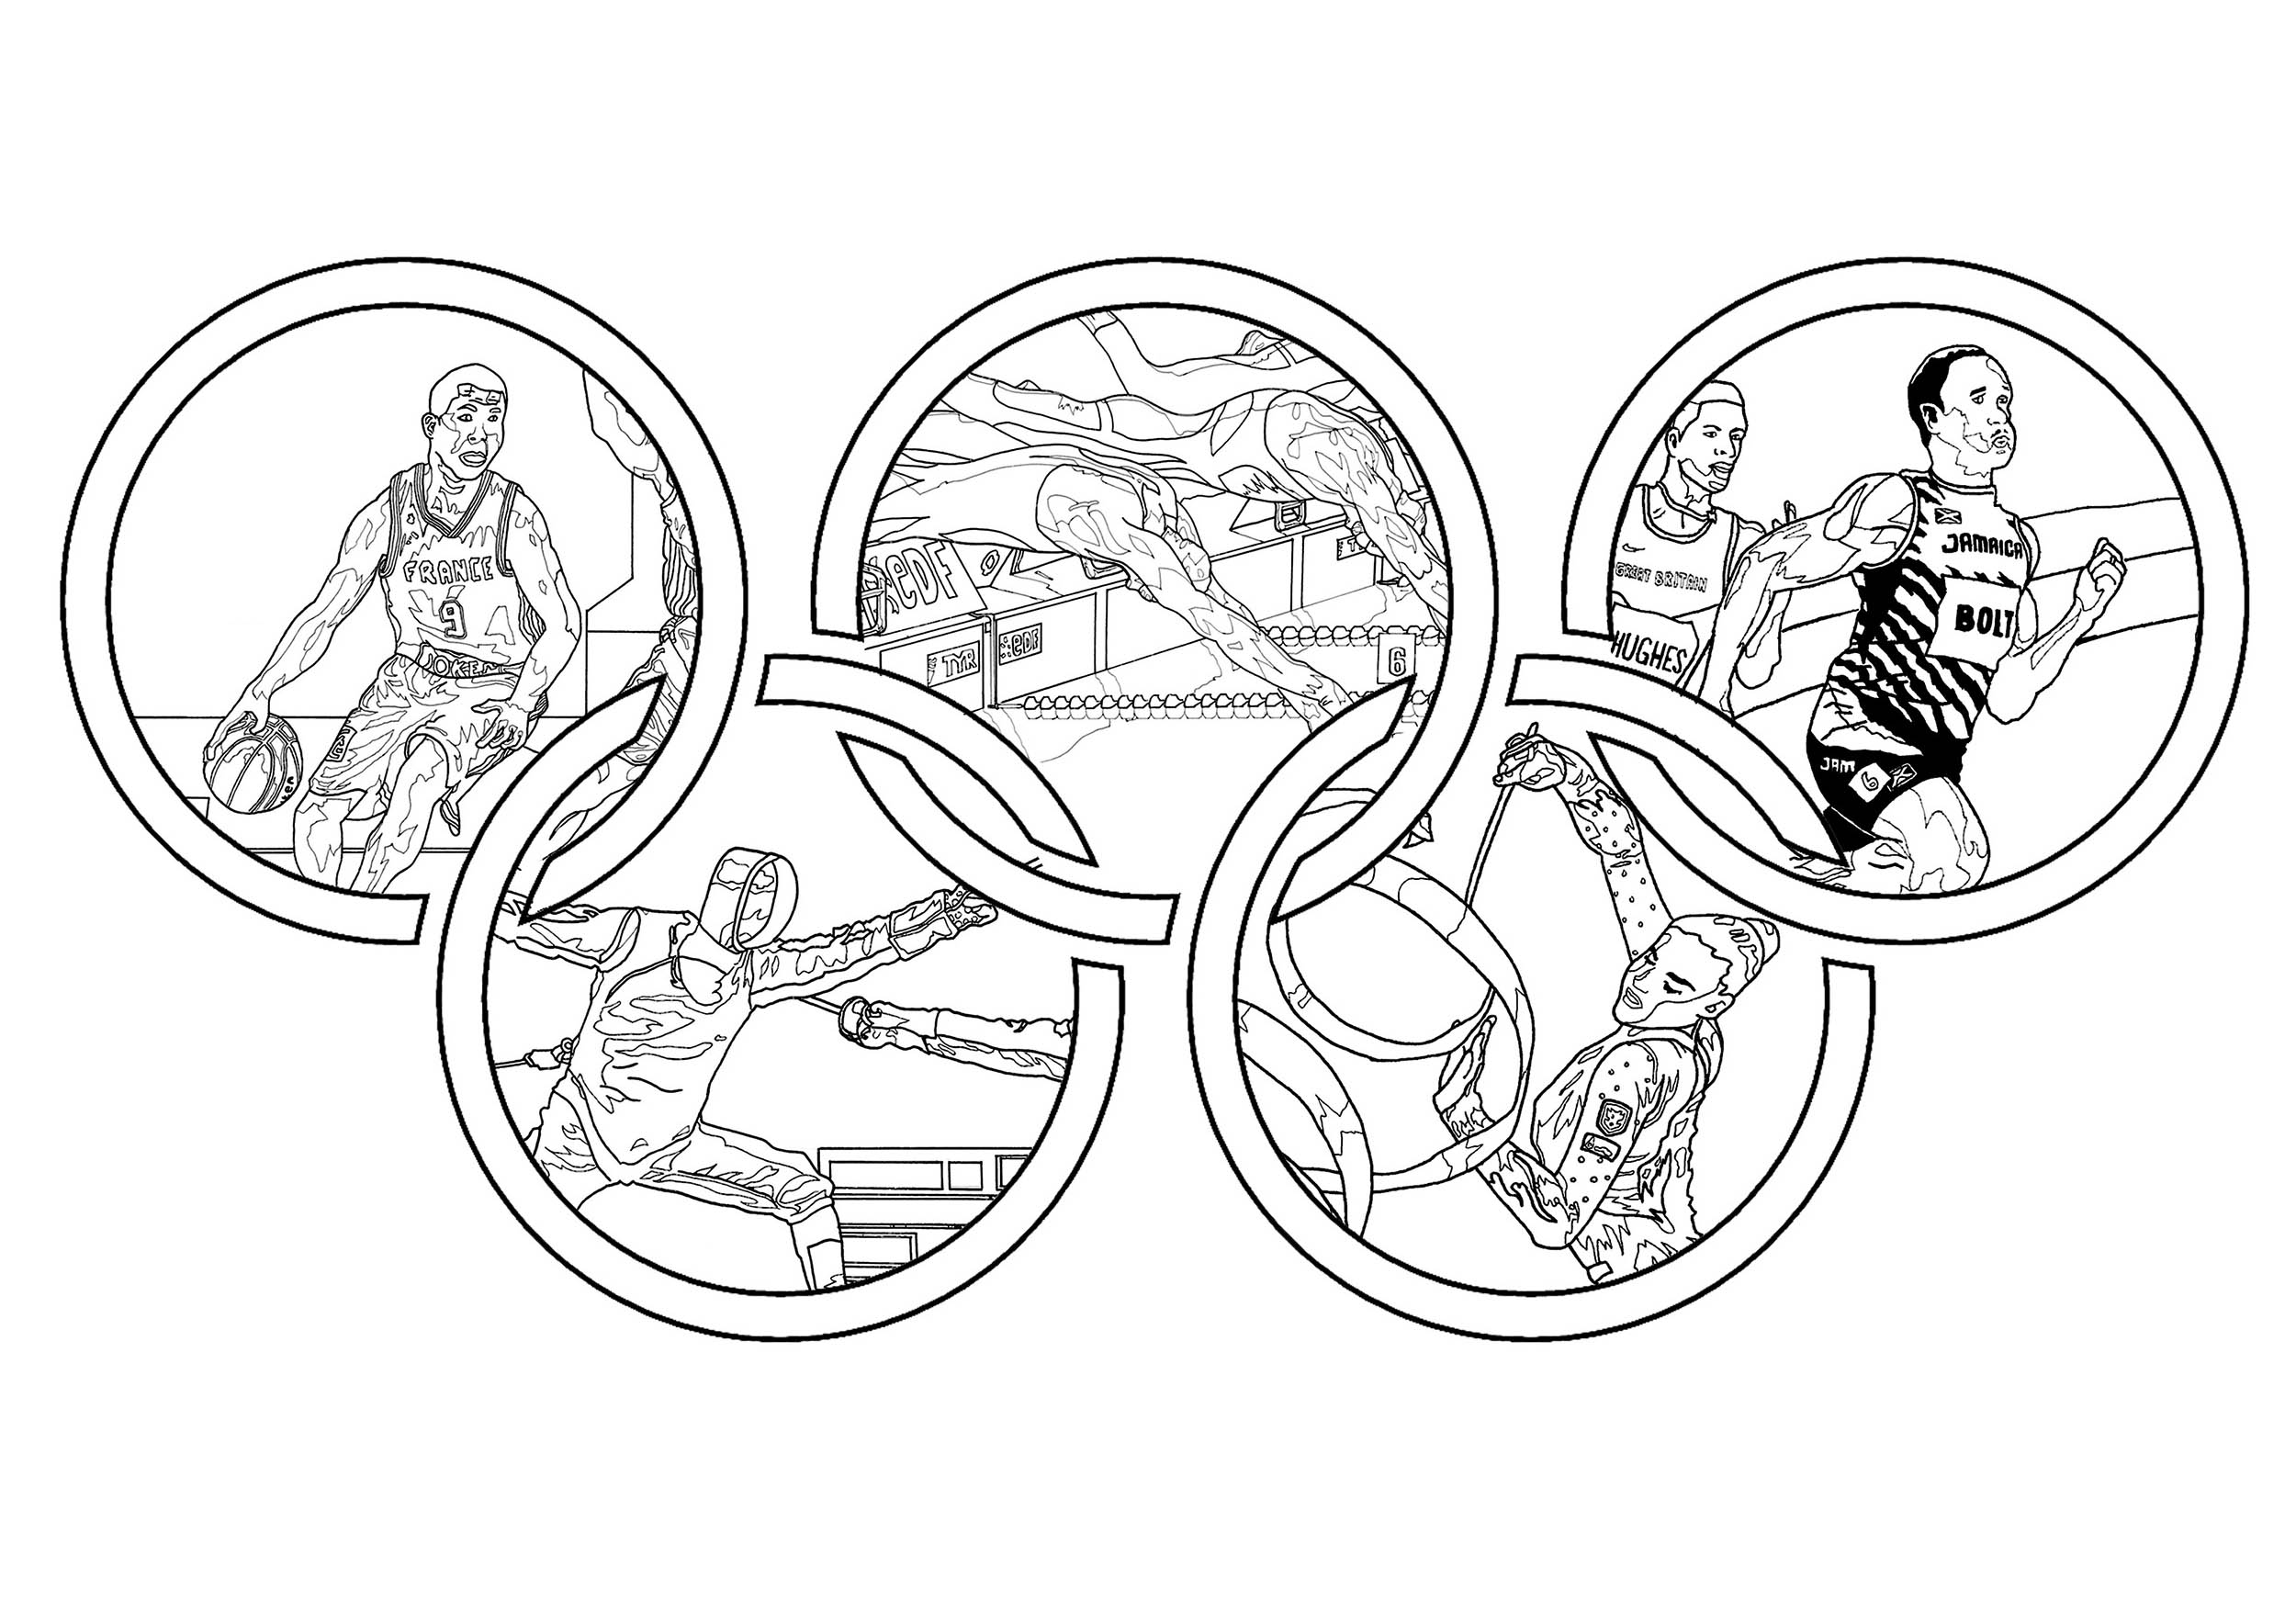 olympic games and sport adult coloring olympics monkeys hard sheets pictures covered cart coloring pages Olympics Coloring Page